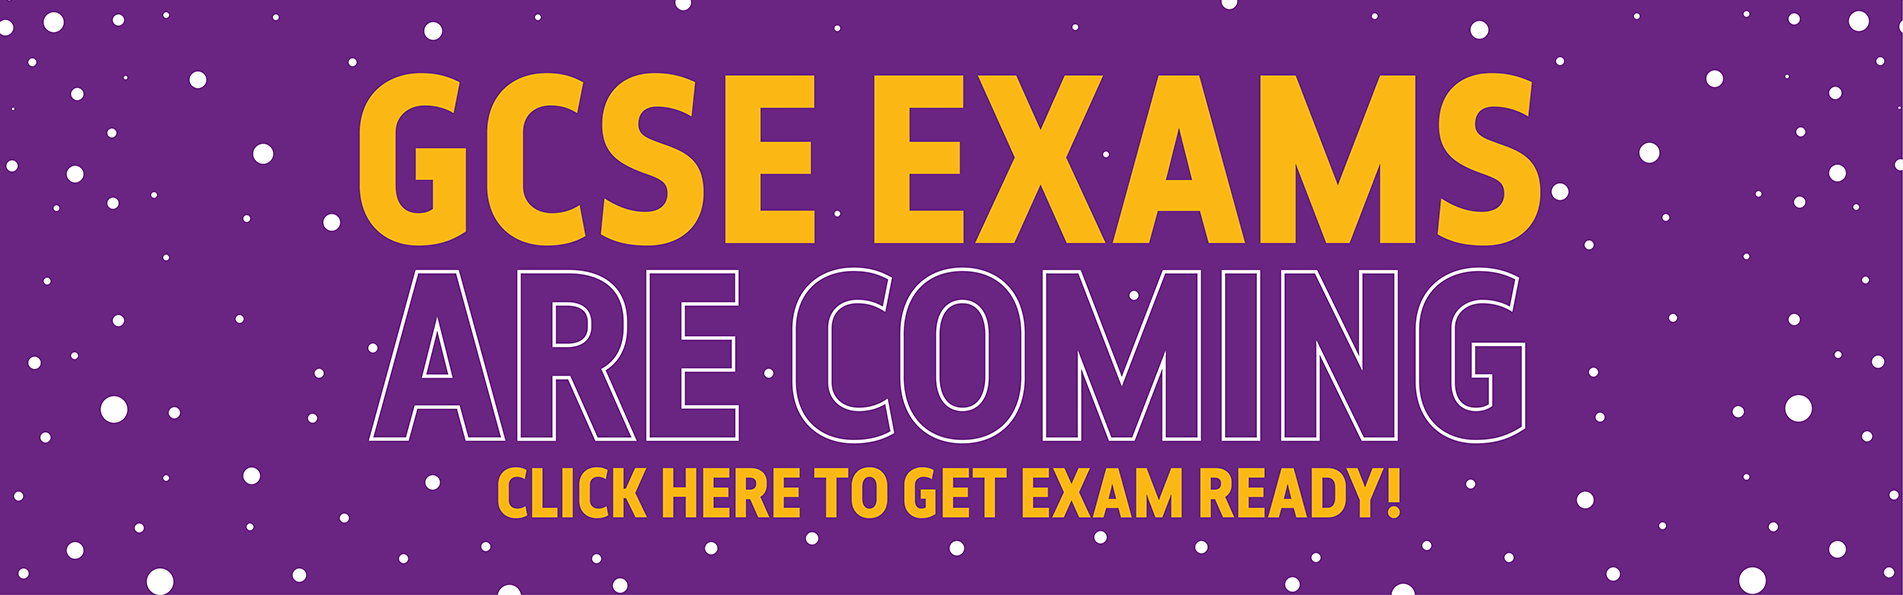 Get help preparing for your GCSE exams